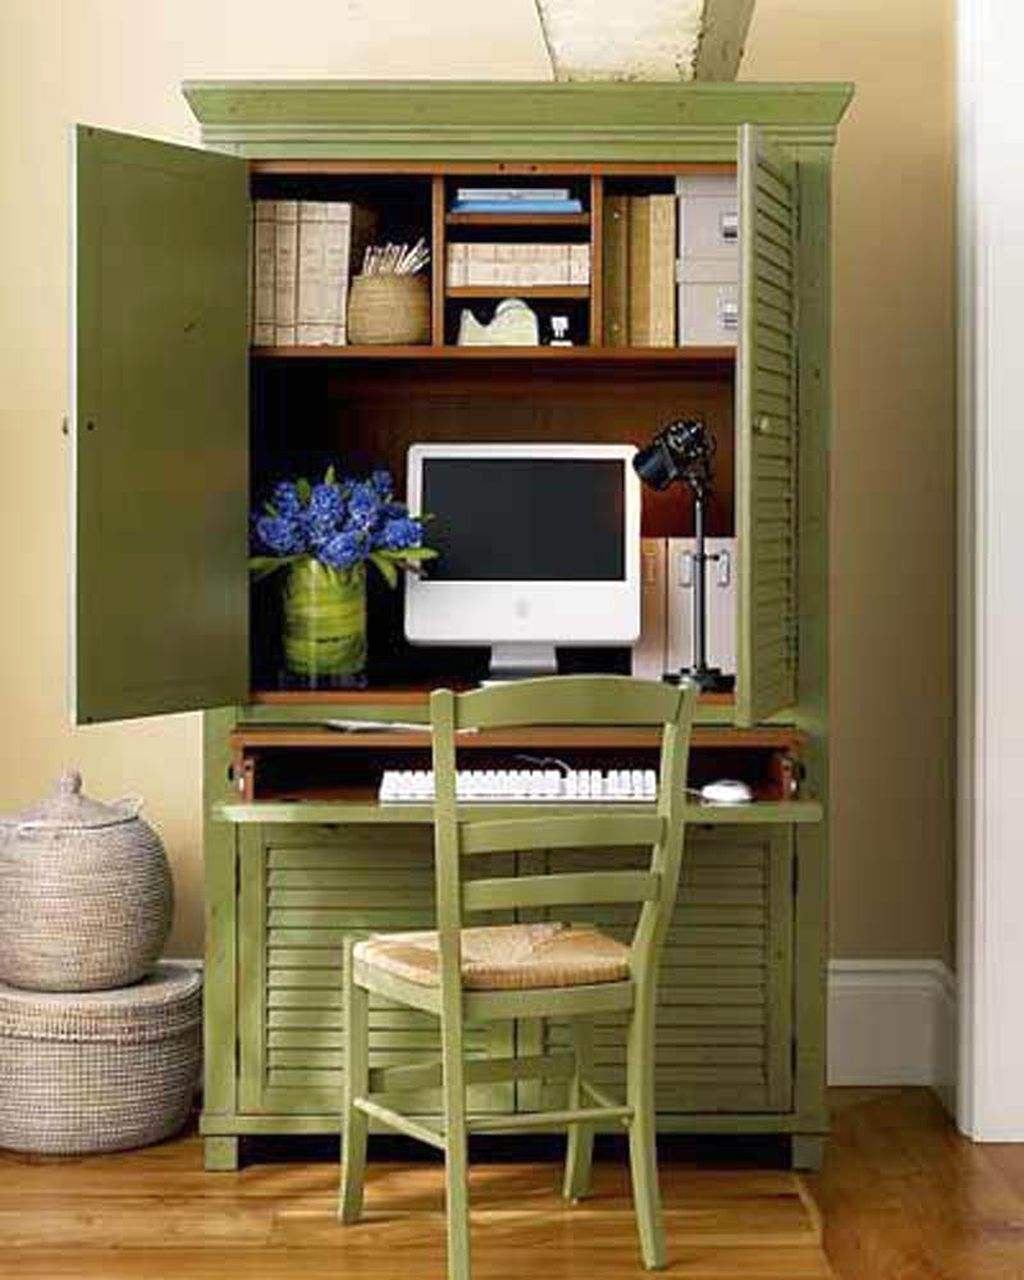 Green cupboard home office design ideas for small spaces for Home office design decorating ideas